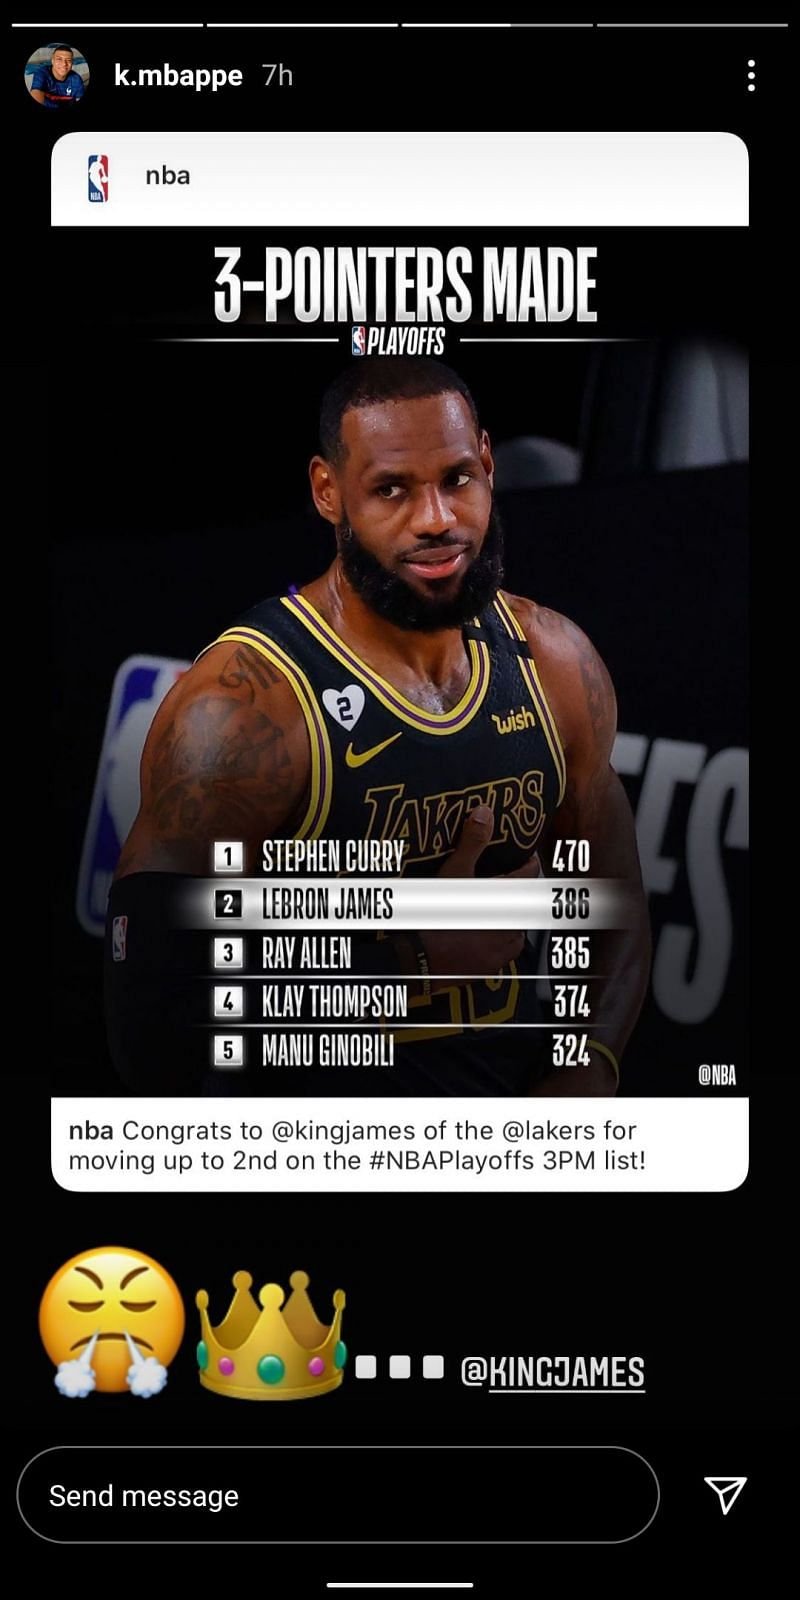 Kylian Mbappe praised LeBron for moving up on all-time playoffs 3-pointers list